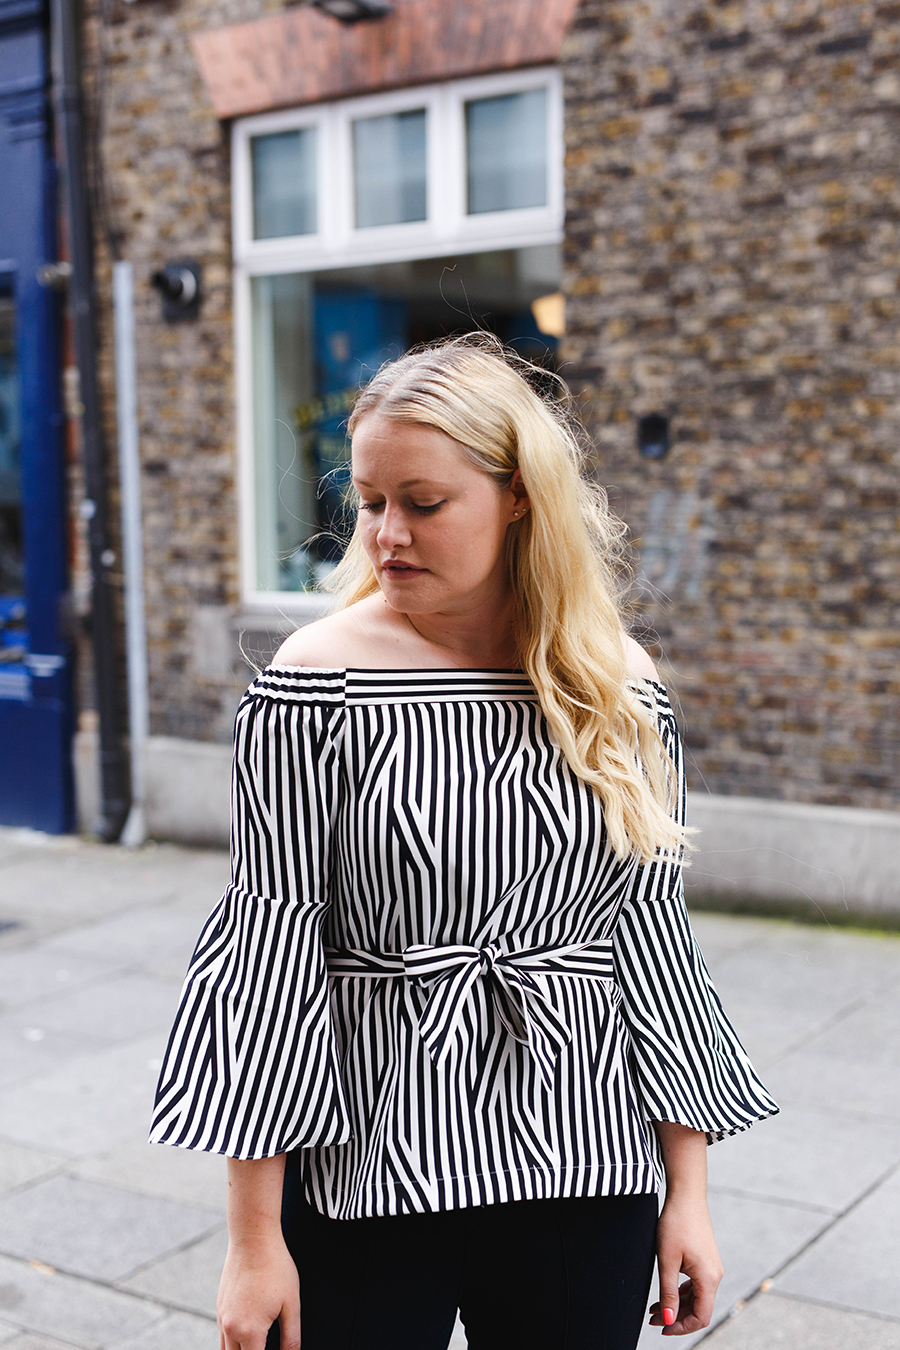 How to wear stripes with Karen Millen